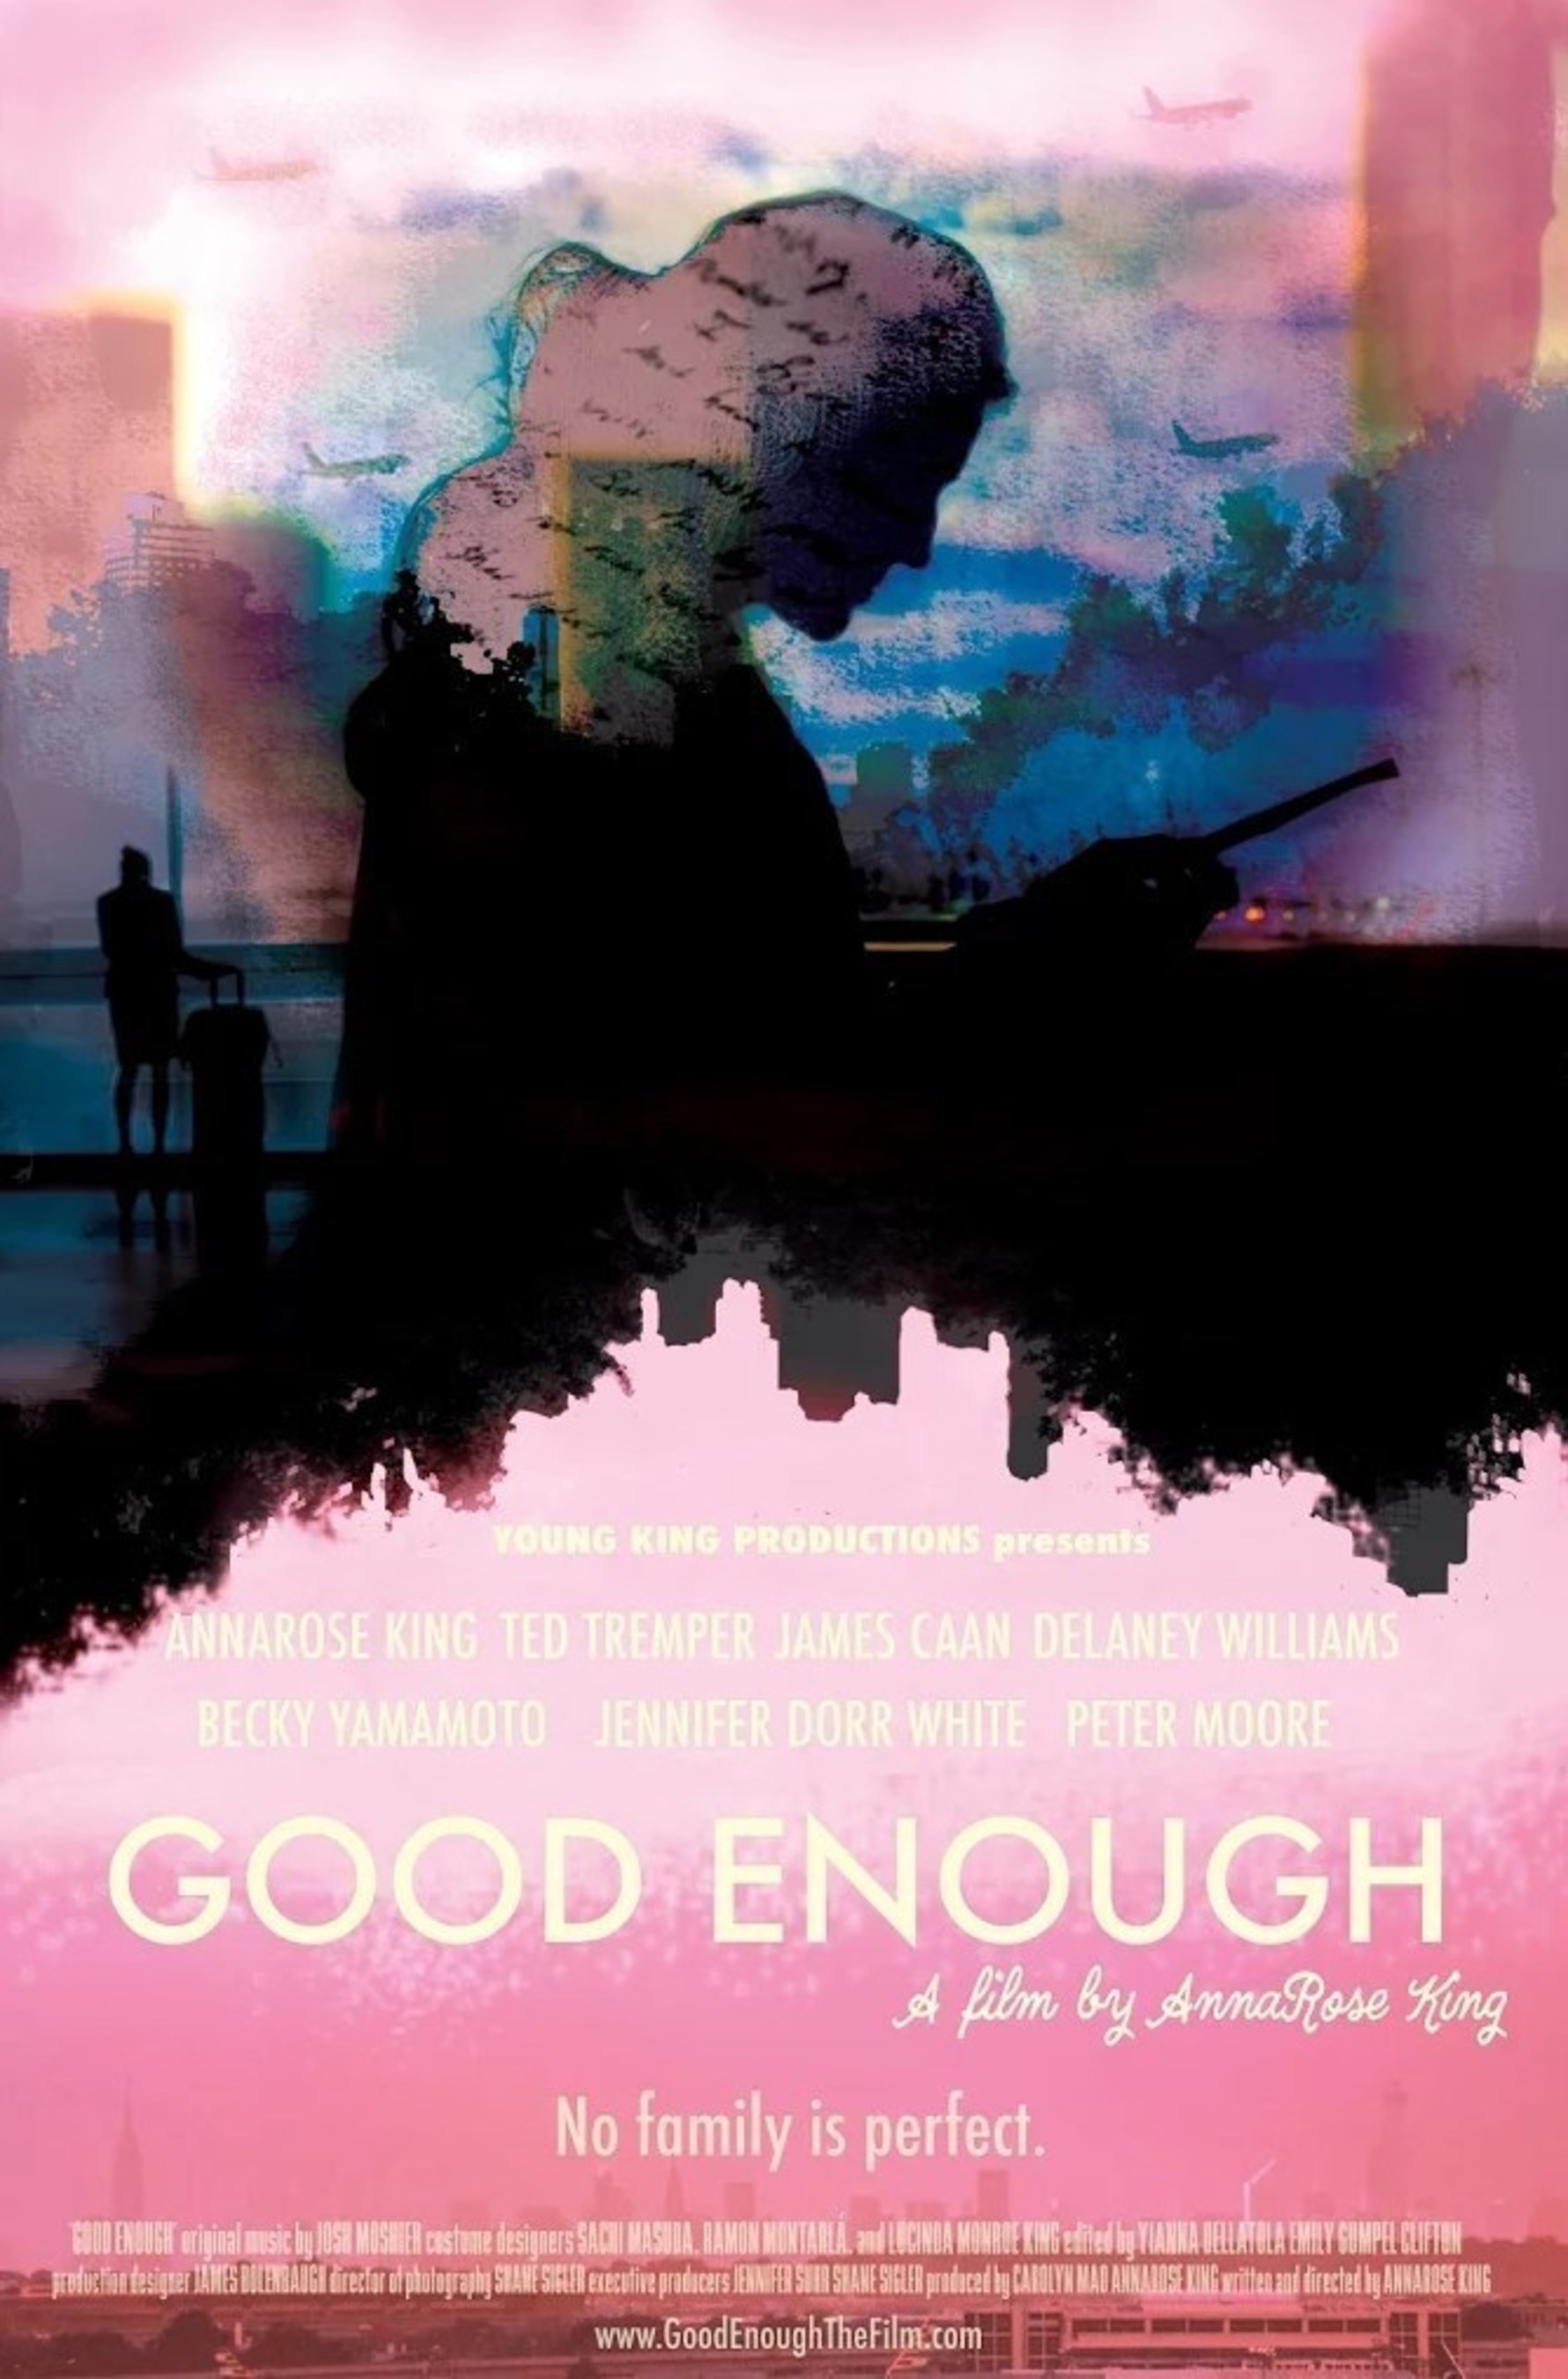 World Premiere of Feature Film Good Enough at the Boston International Film Festival